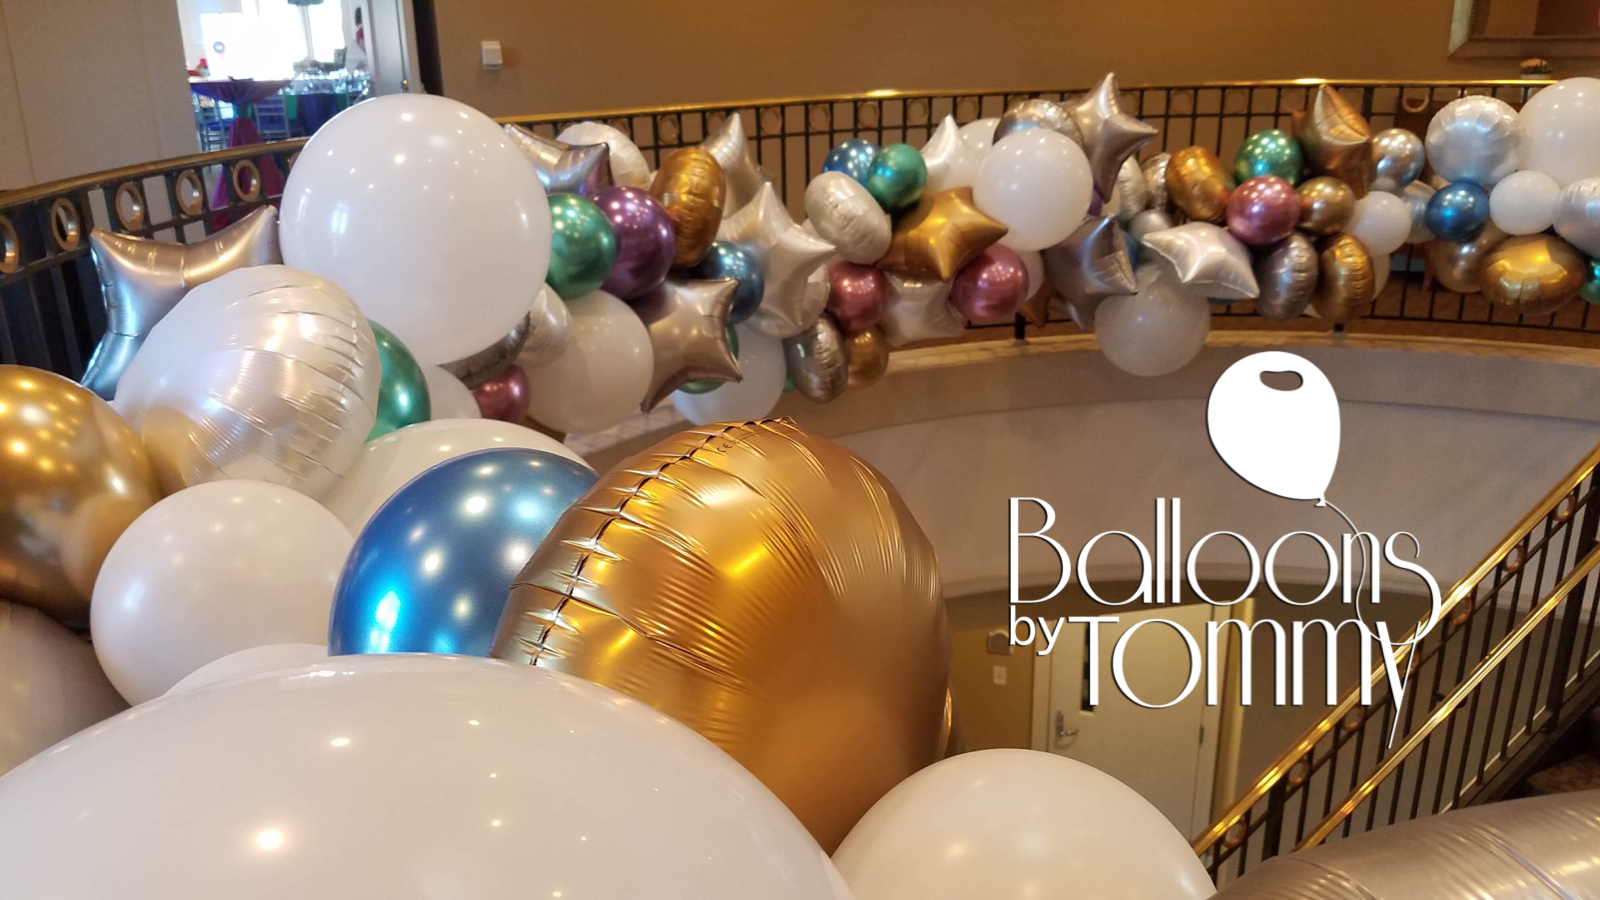 Balloons by Tommy - Satin Luxe